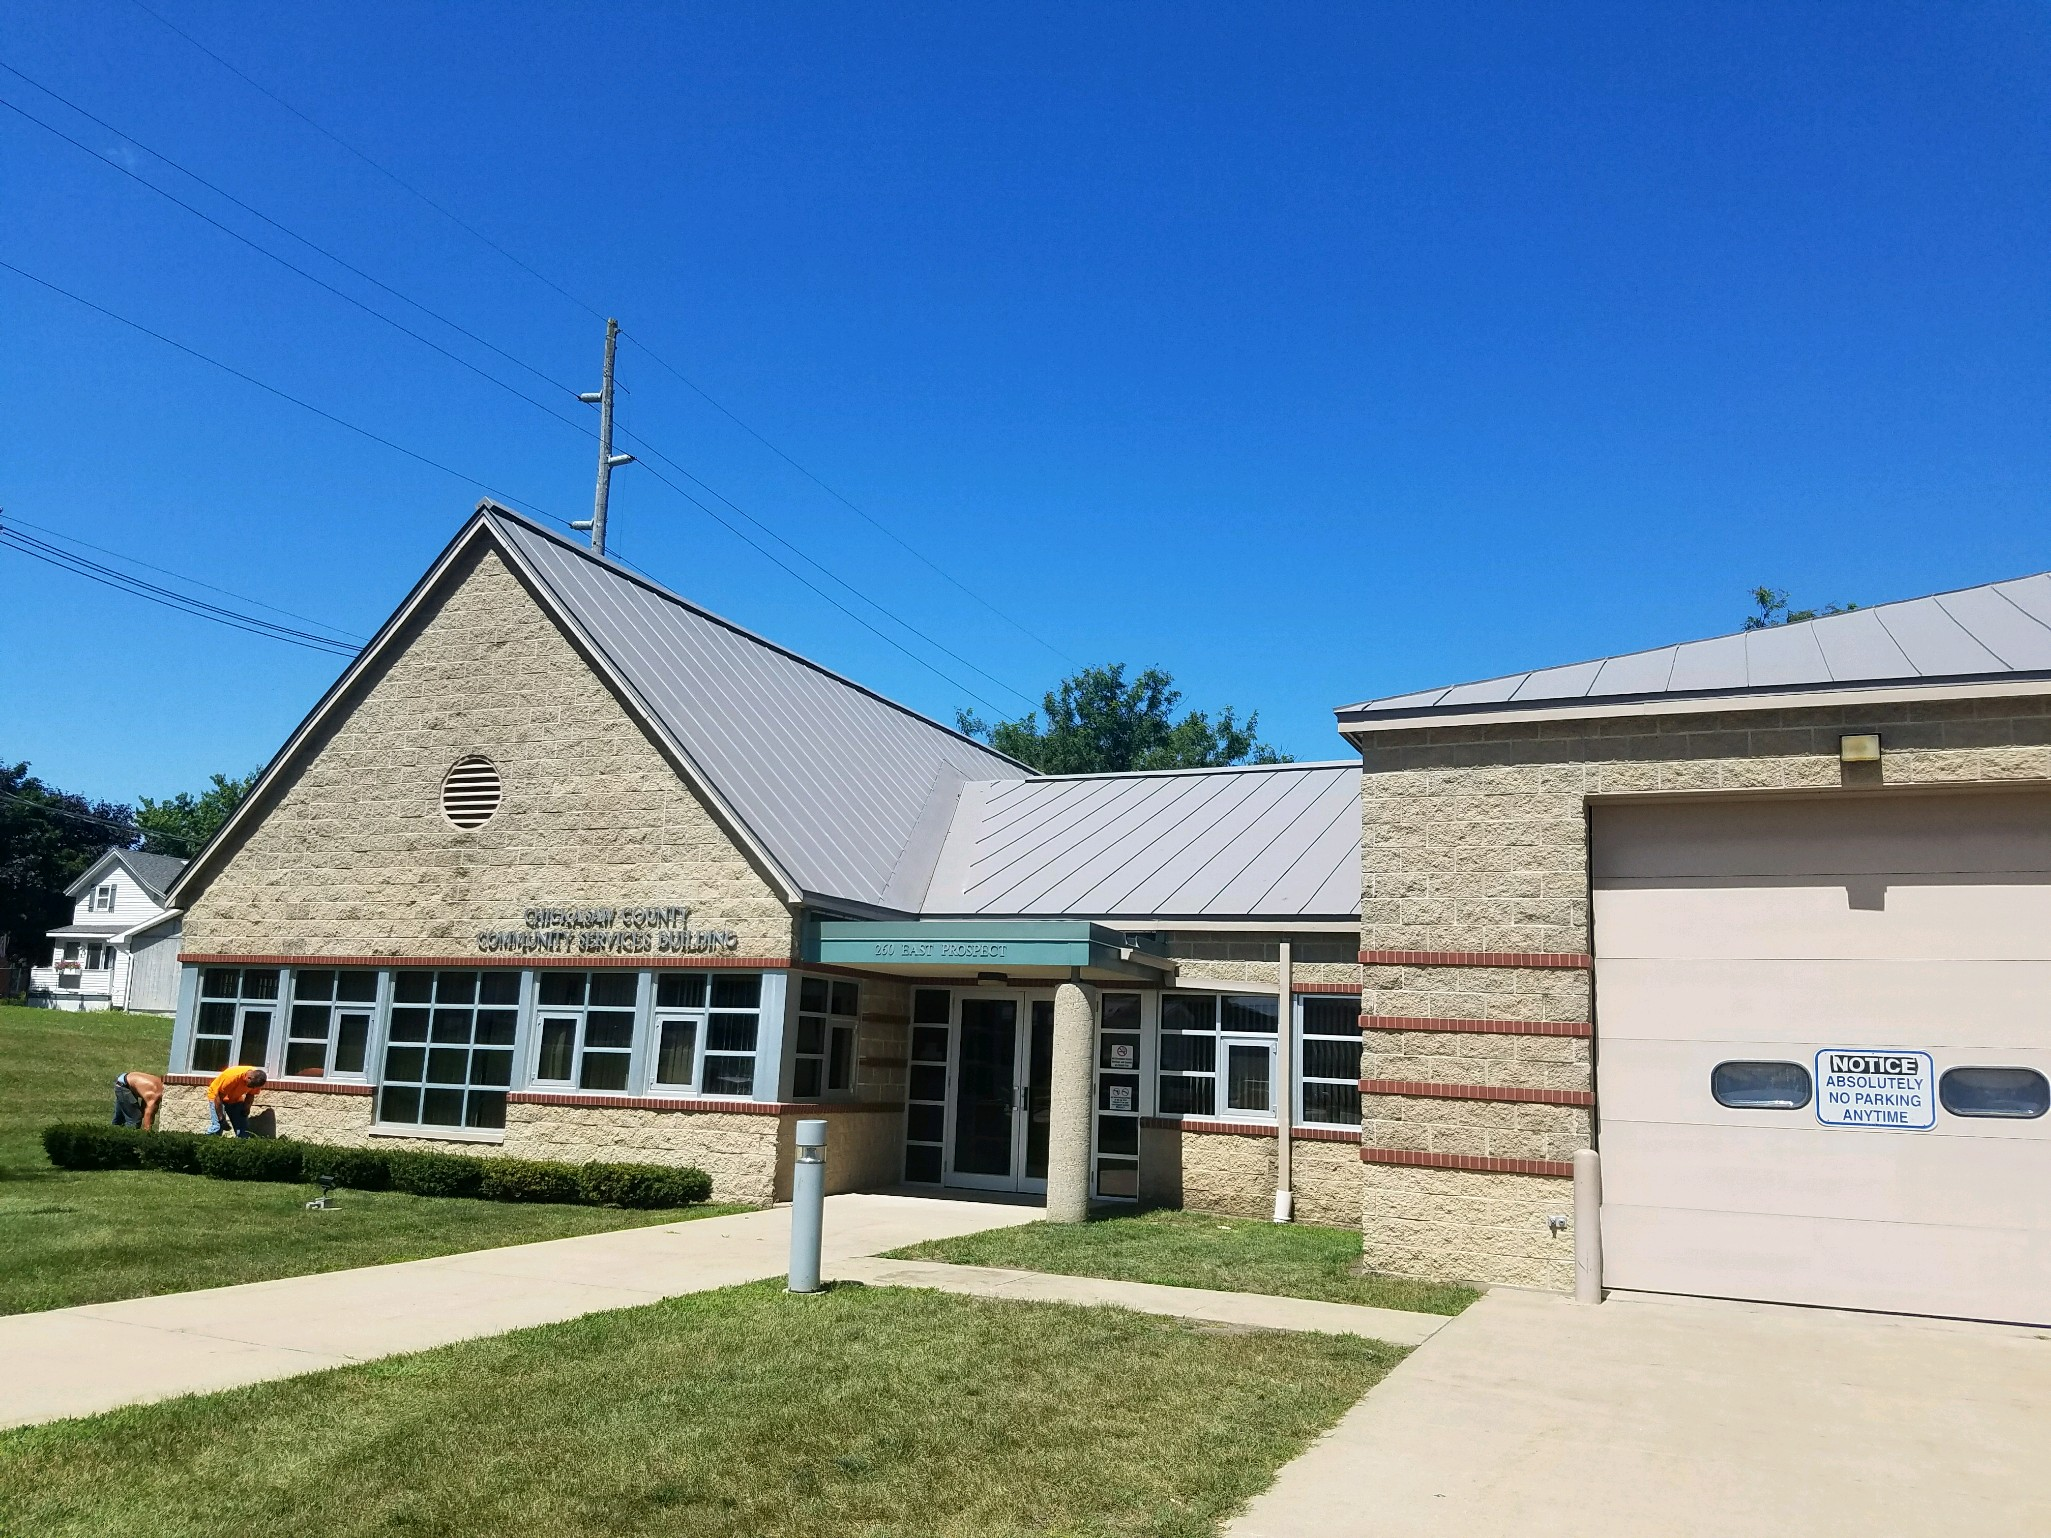 standing seam sheet metal roofing commercial light grey silver wisconsin minnesota illinois iowa north dakota chickasaw county community services building